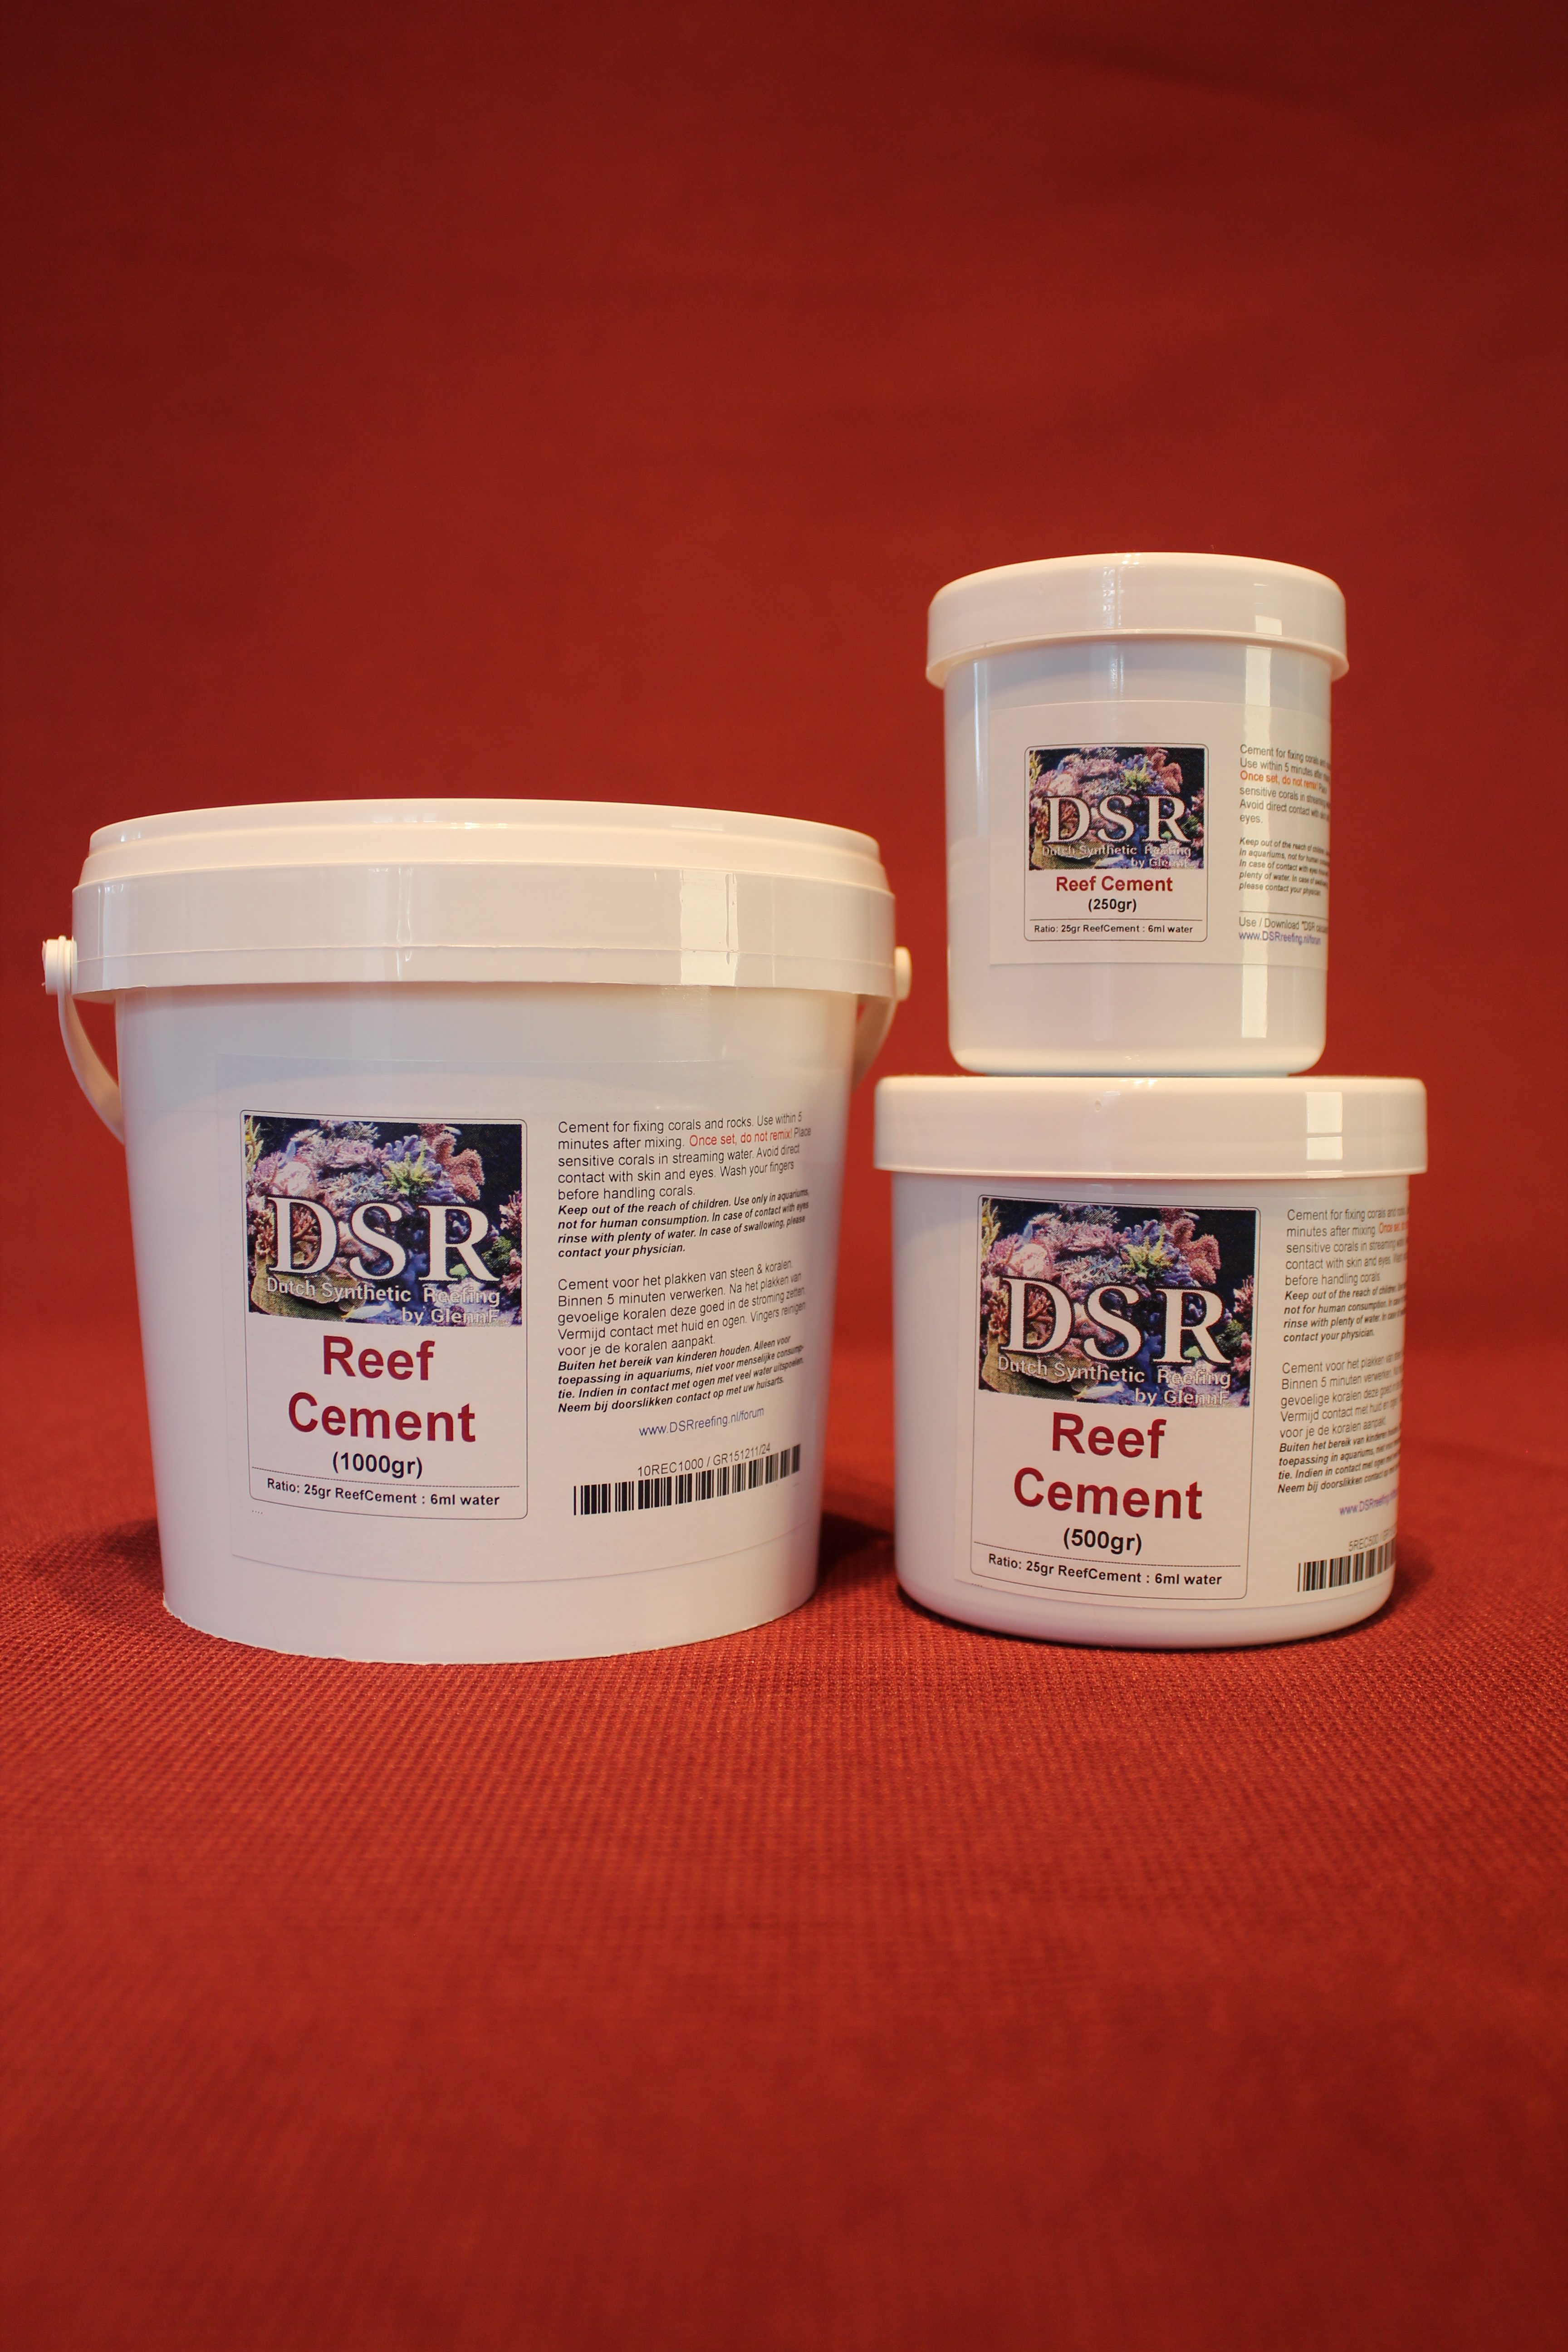 Dsr Reef Cement